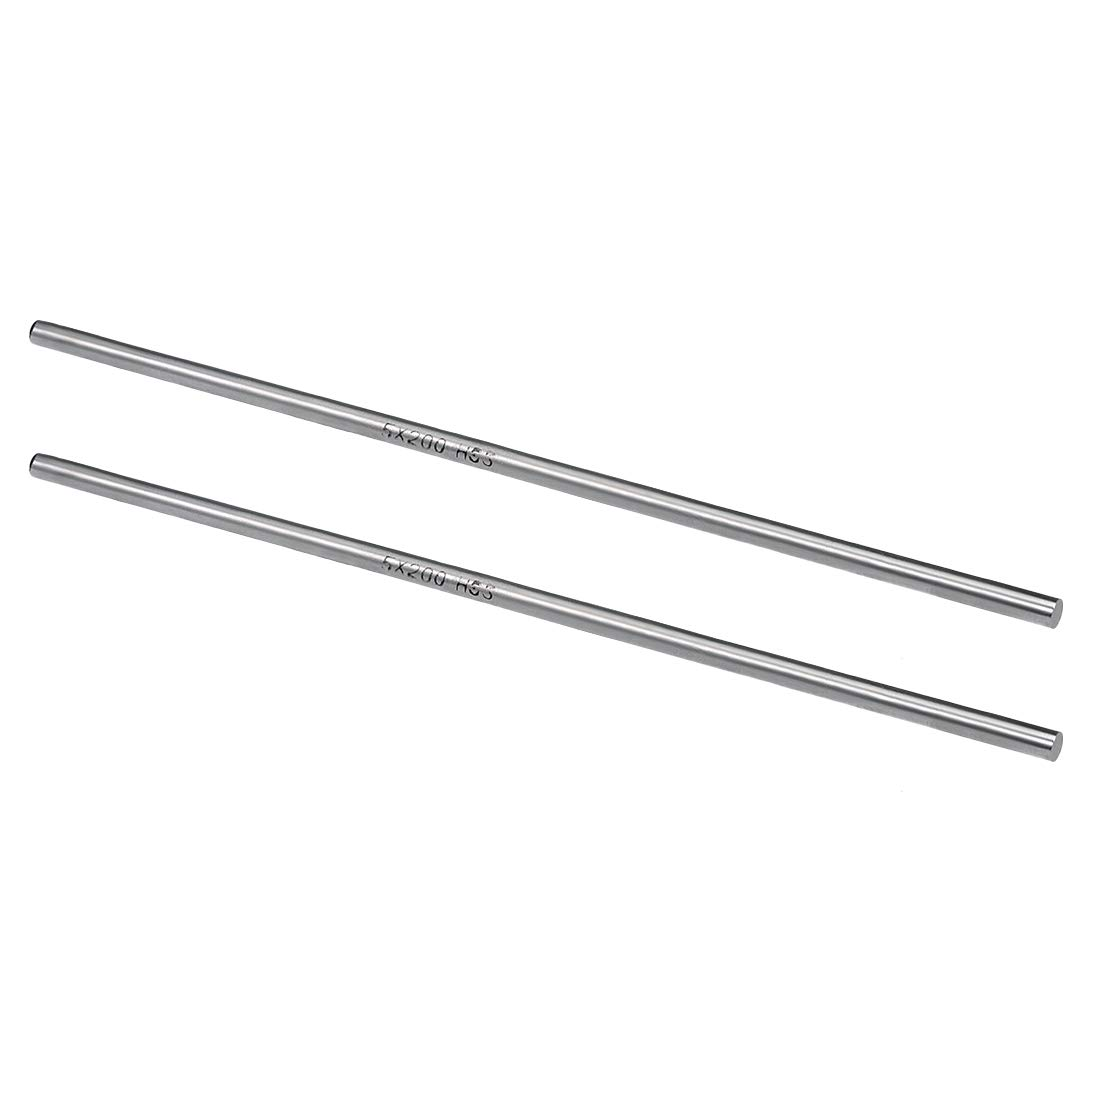 sourcing map HSS Lathe Round Rod Solid Shaft Bar 6mm Dia 200mm Length